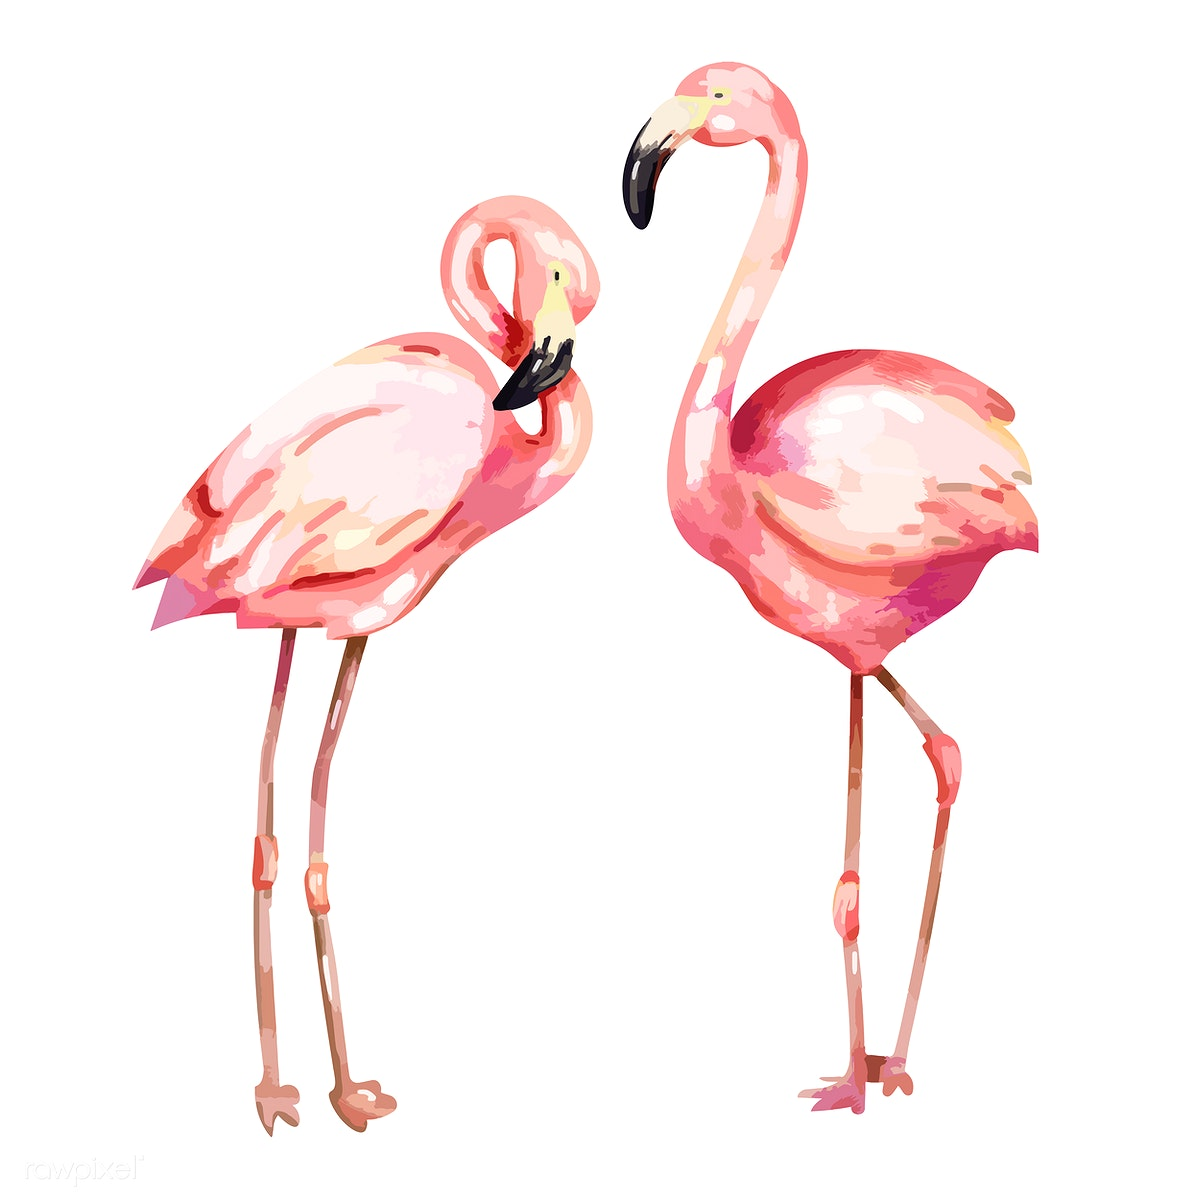 Hand Drawn Pink Flamingo Illustration Royalty Free Stock